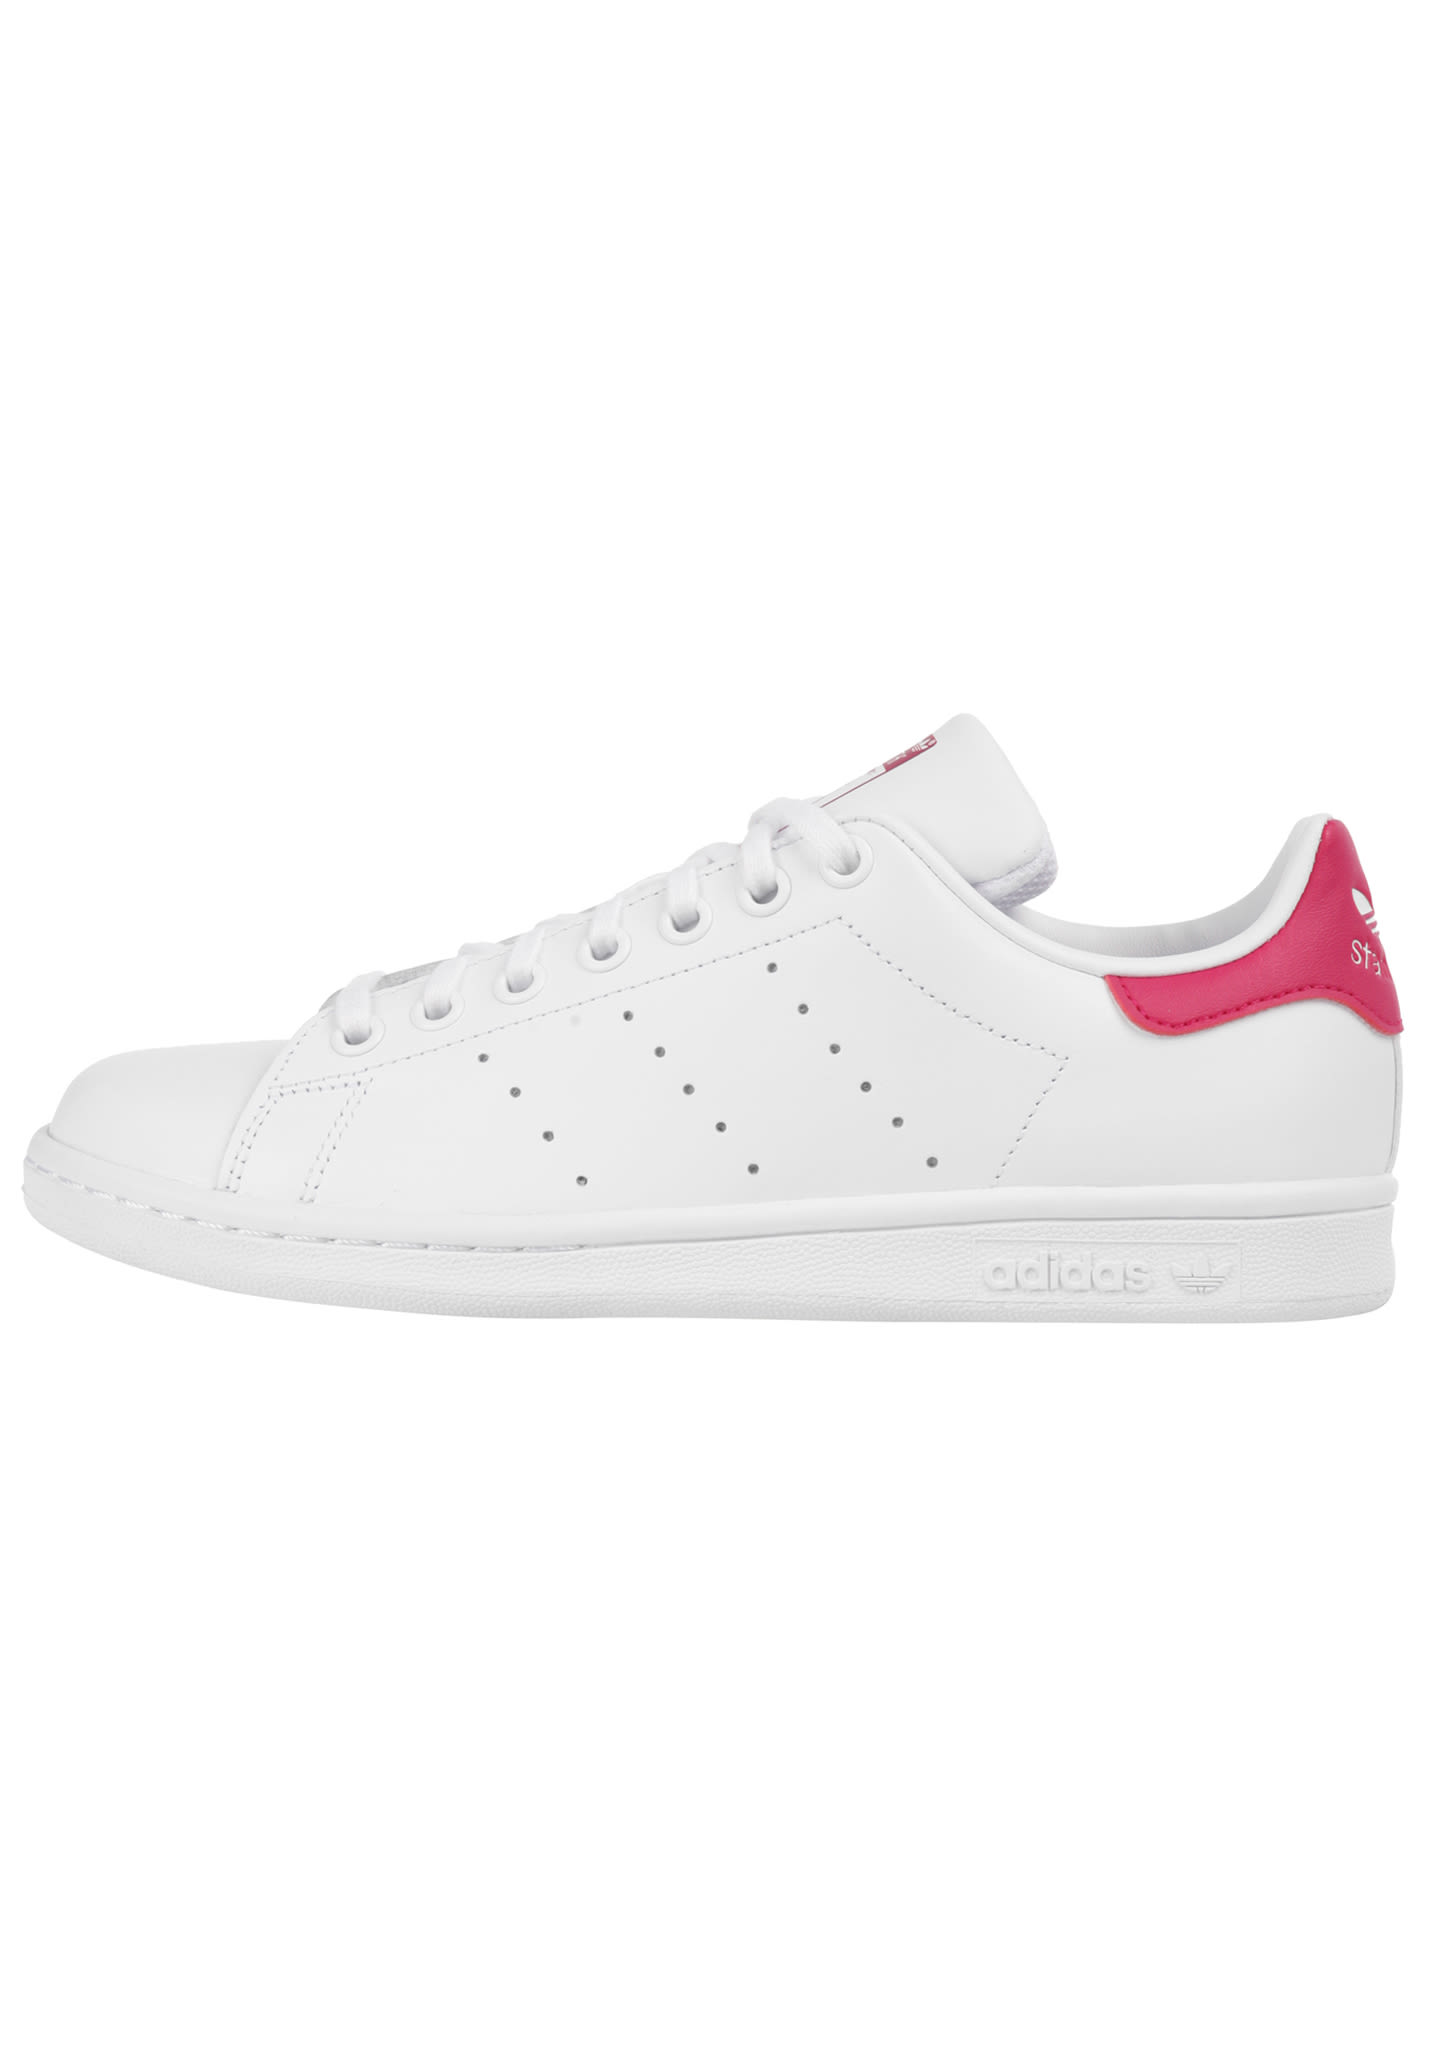 lowest price 88c4d 72b19 adidas stan smith og donna marrone